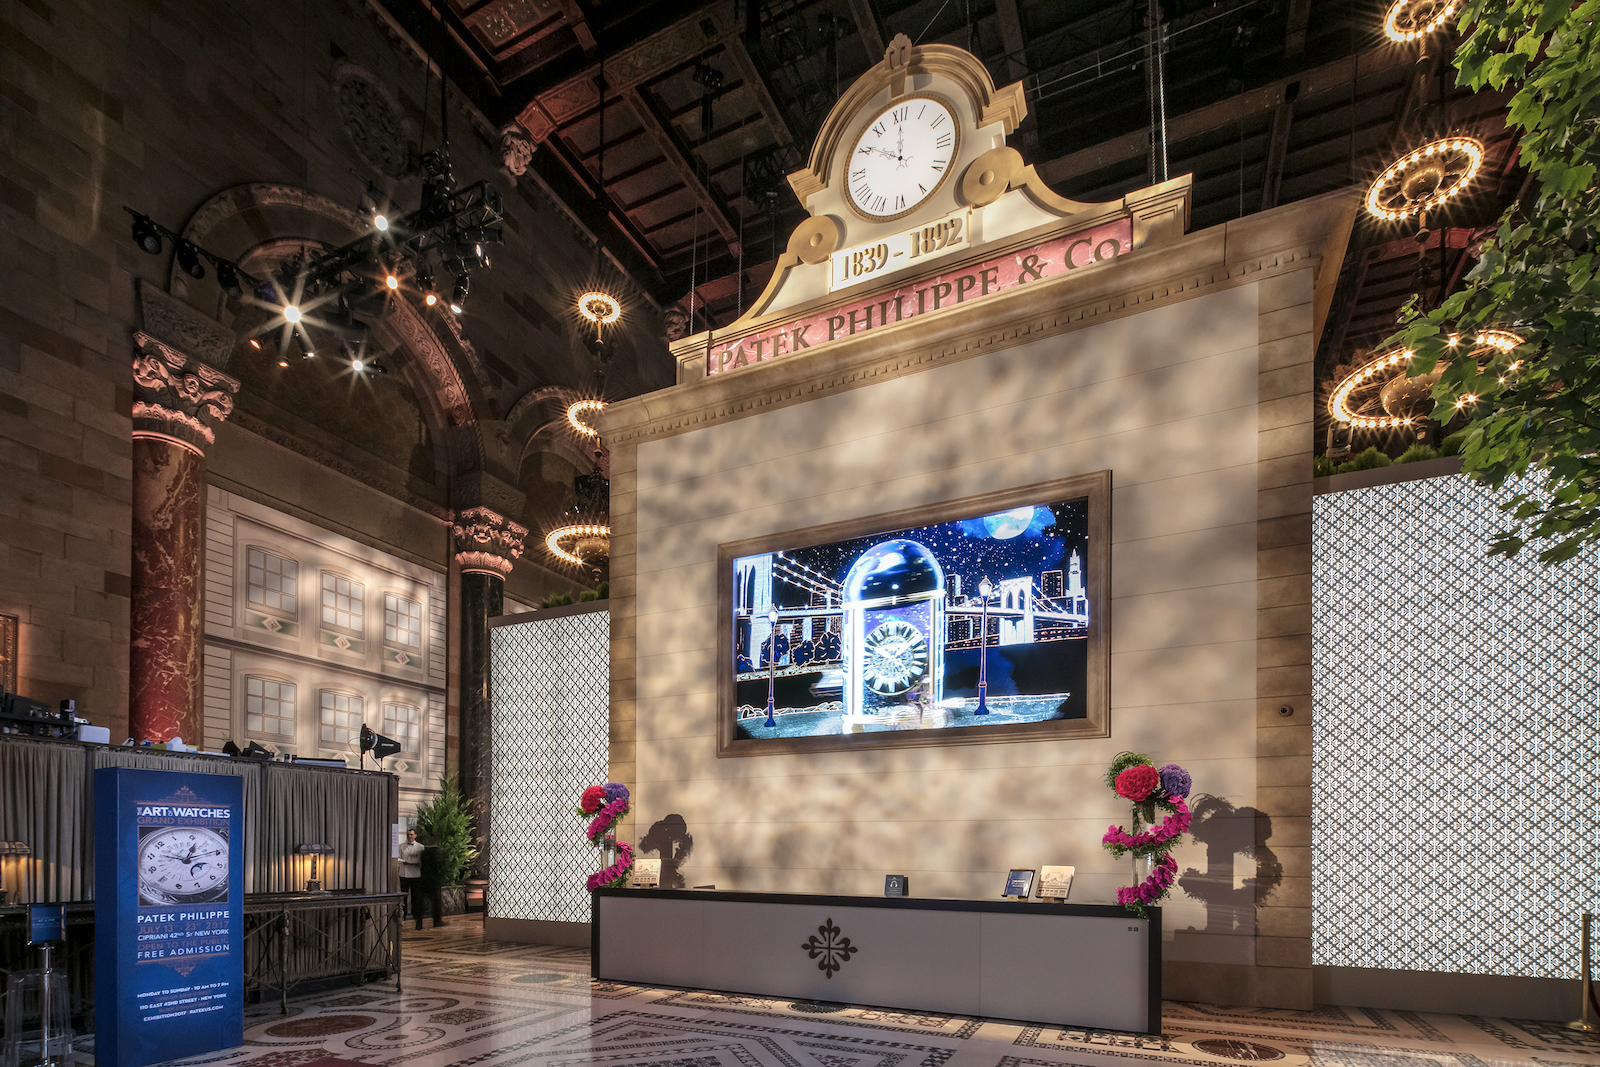 Patek Philippe The Art of Watches Grand Exhibition New York 2017 - Cipriani, Hall